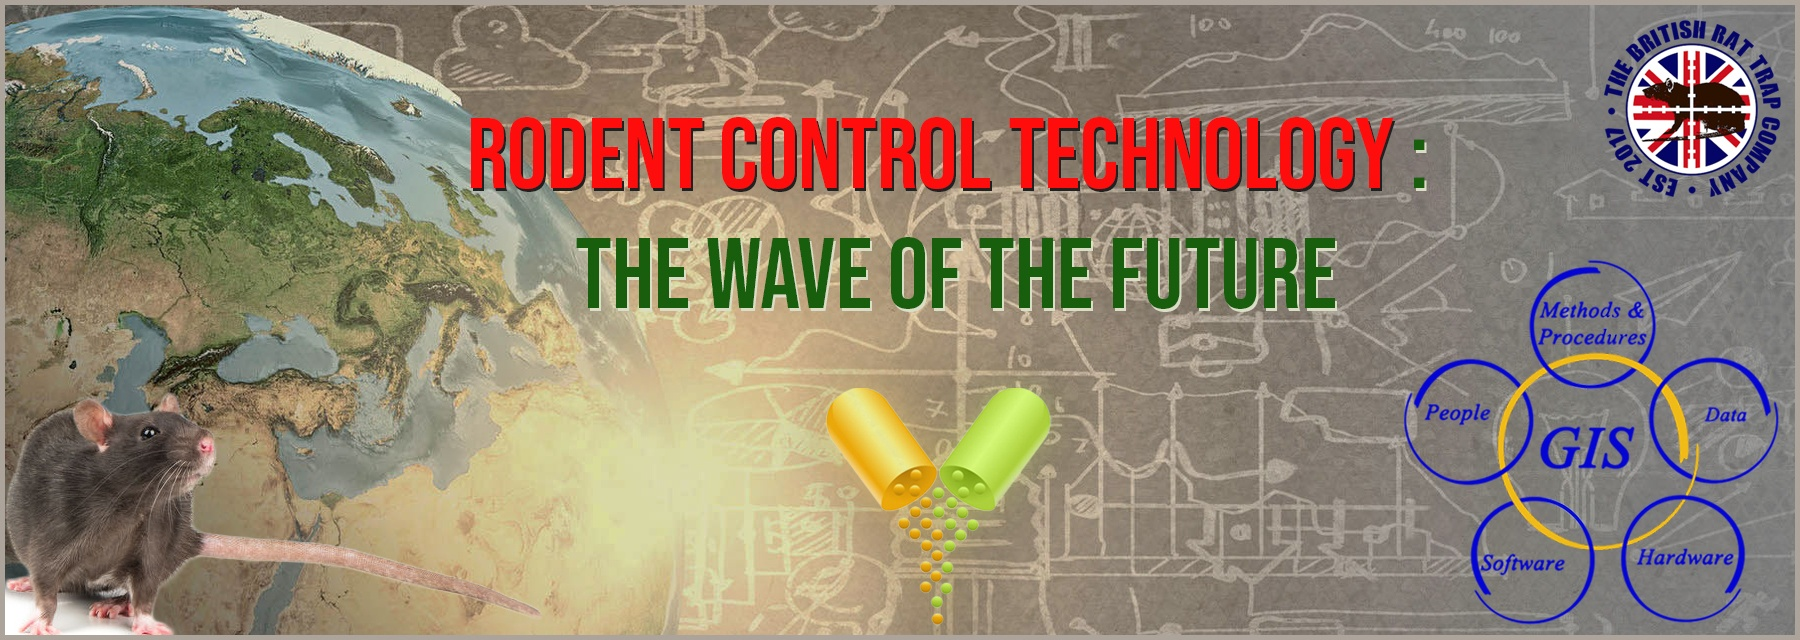 Rodent Control Technologies: The Wave of The Future – The